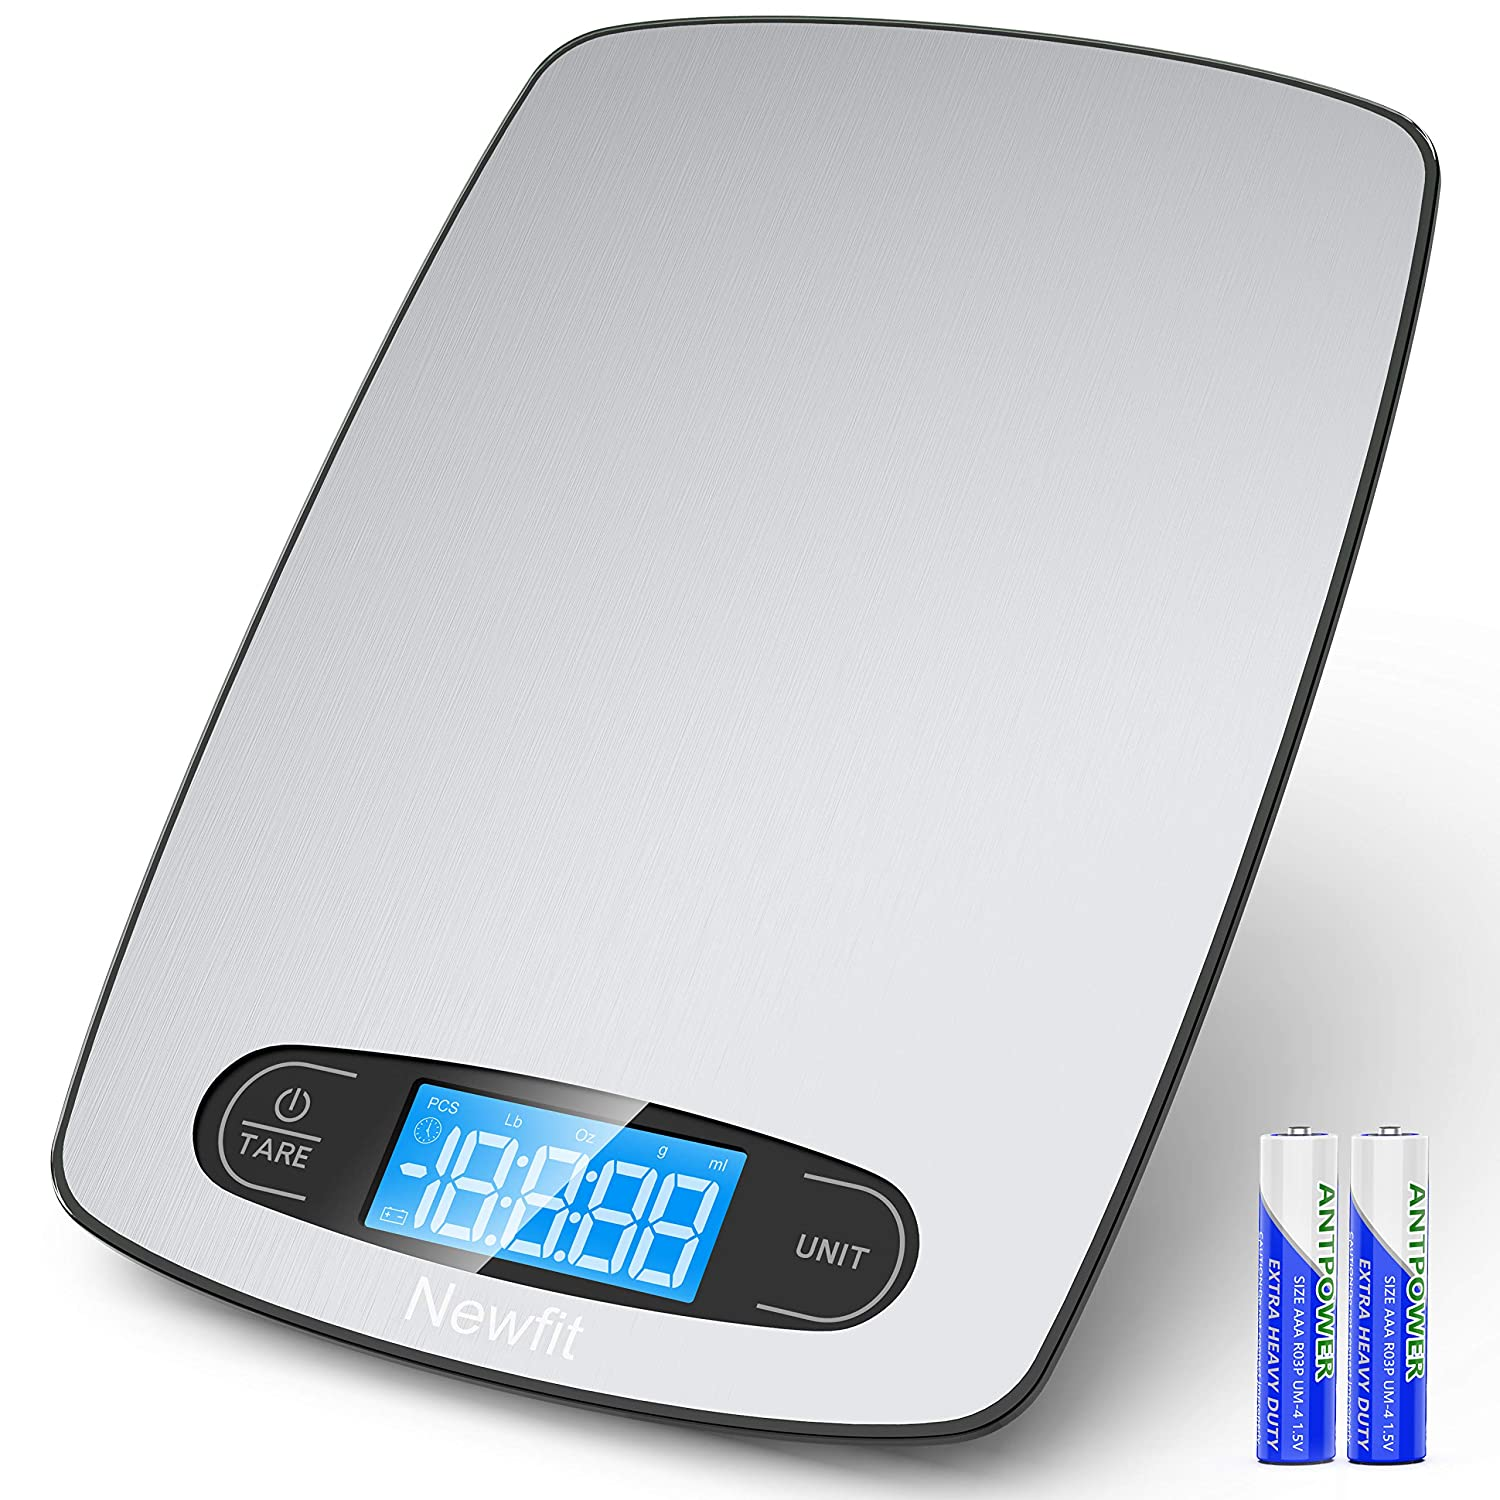 Newfit Food Scale, 22lb Digital Kitchen Scale Weight Grams and oz for Cooking Baking, 1g/0.1oz Precise Graduation, Stainless Steel and Tempered Glass